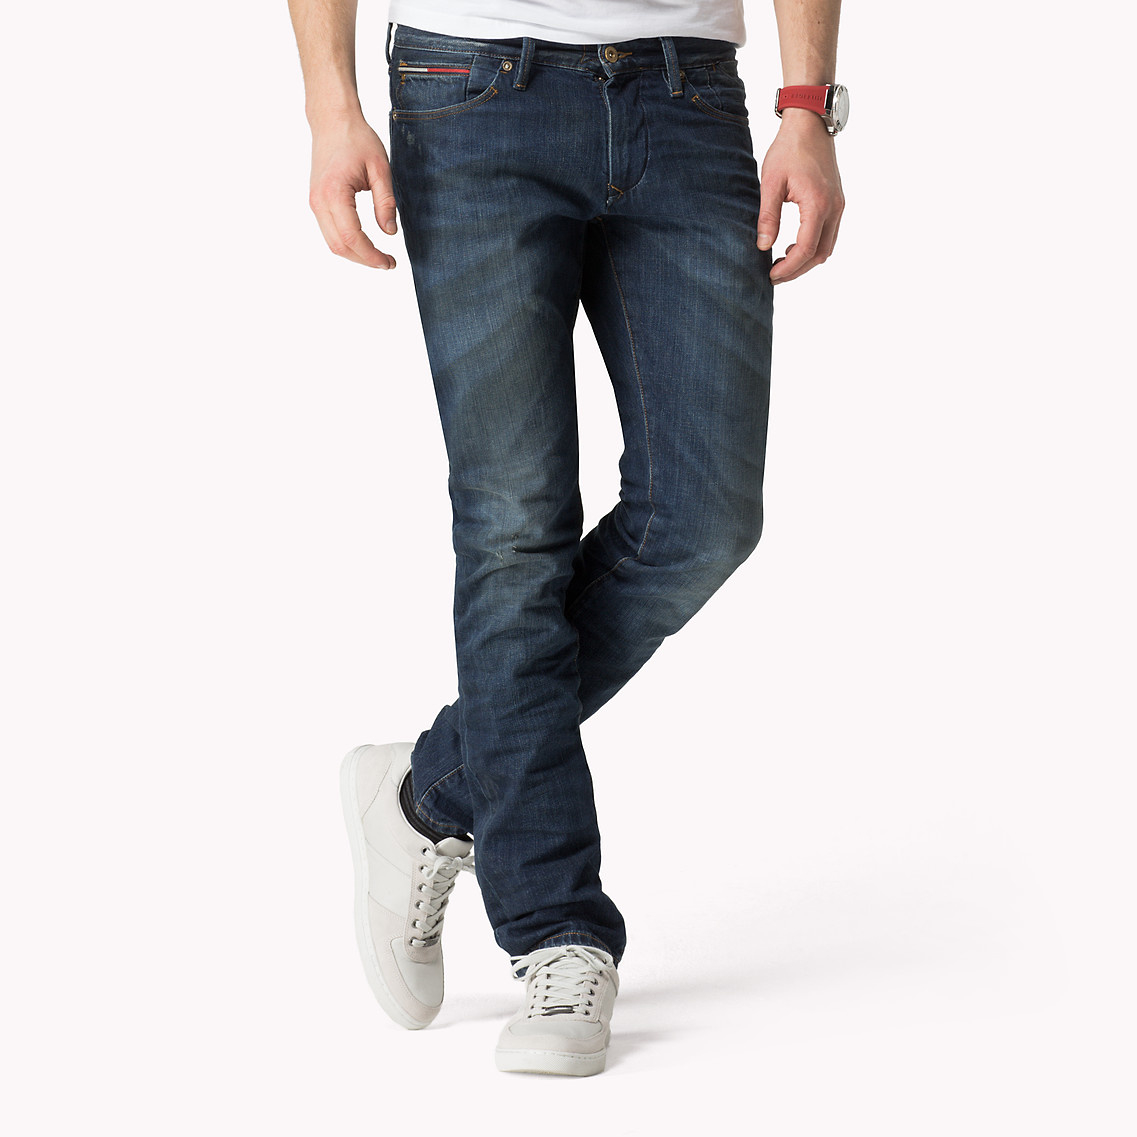 Tommy Hilfiger Slim Fit Jeans in Blue for Men - Lyst 64bc9a8ccb